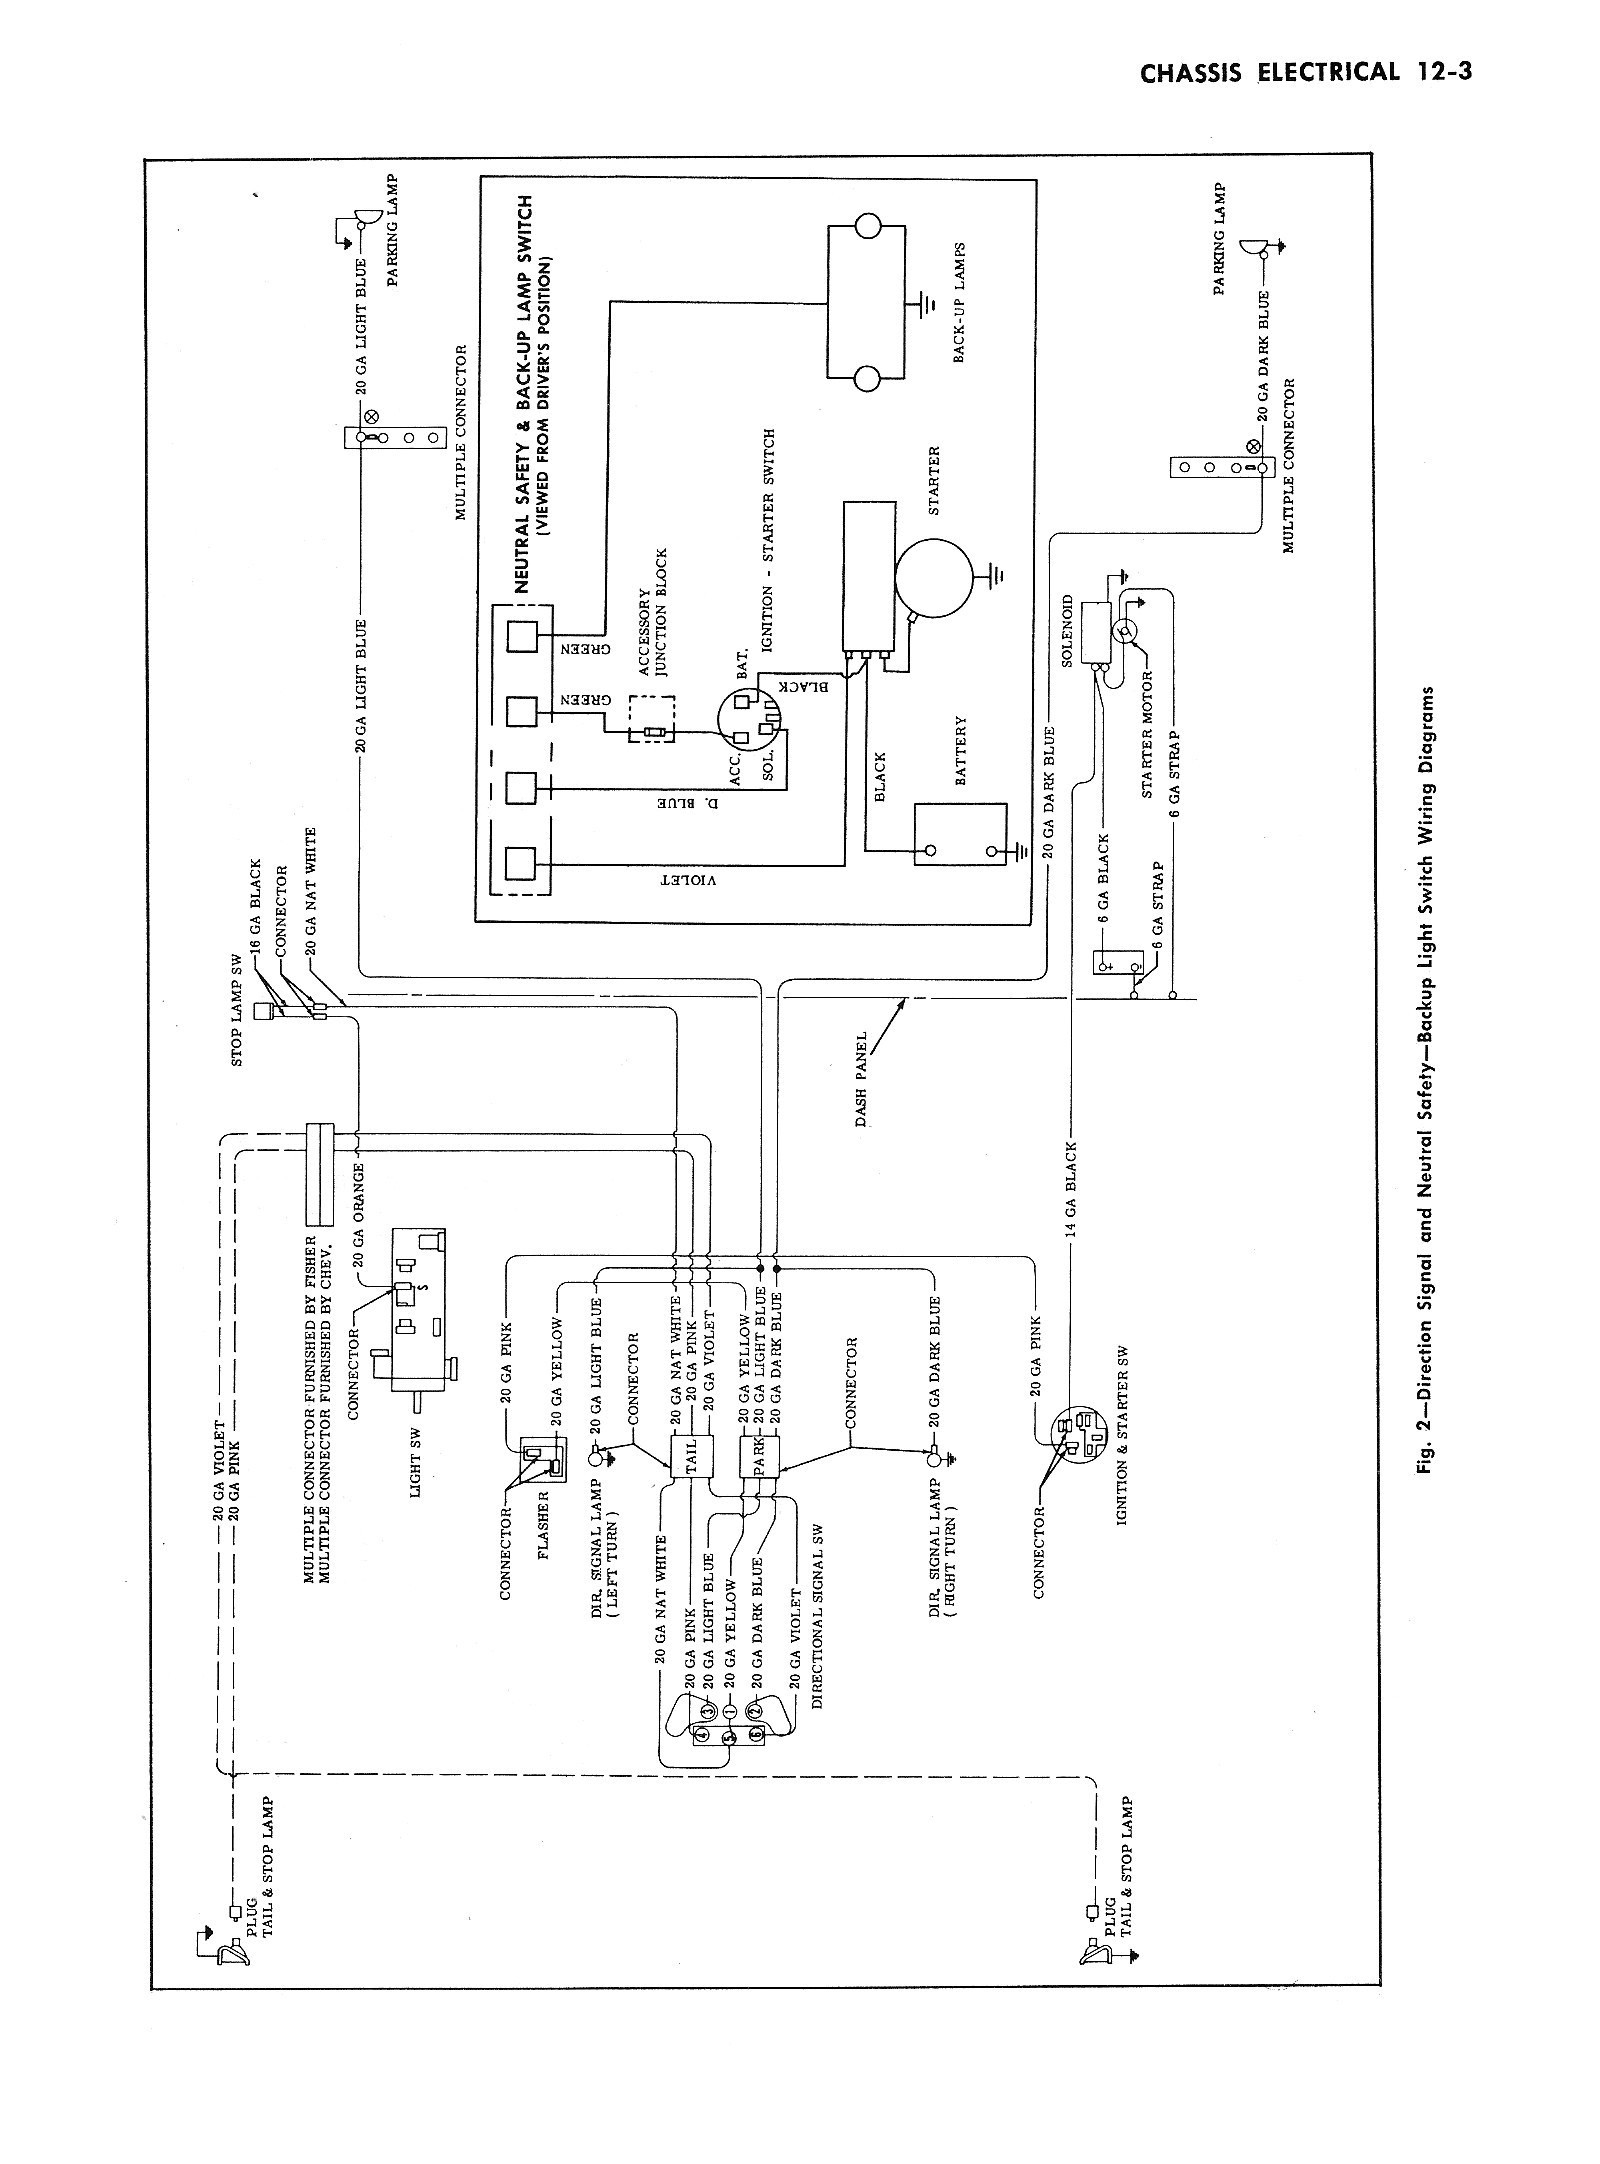 Chevy Wiring Diagram On Overdrive